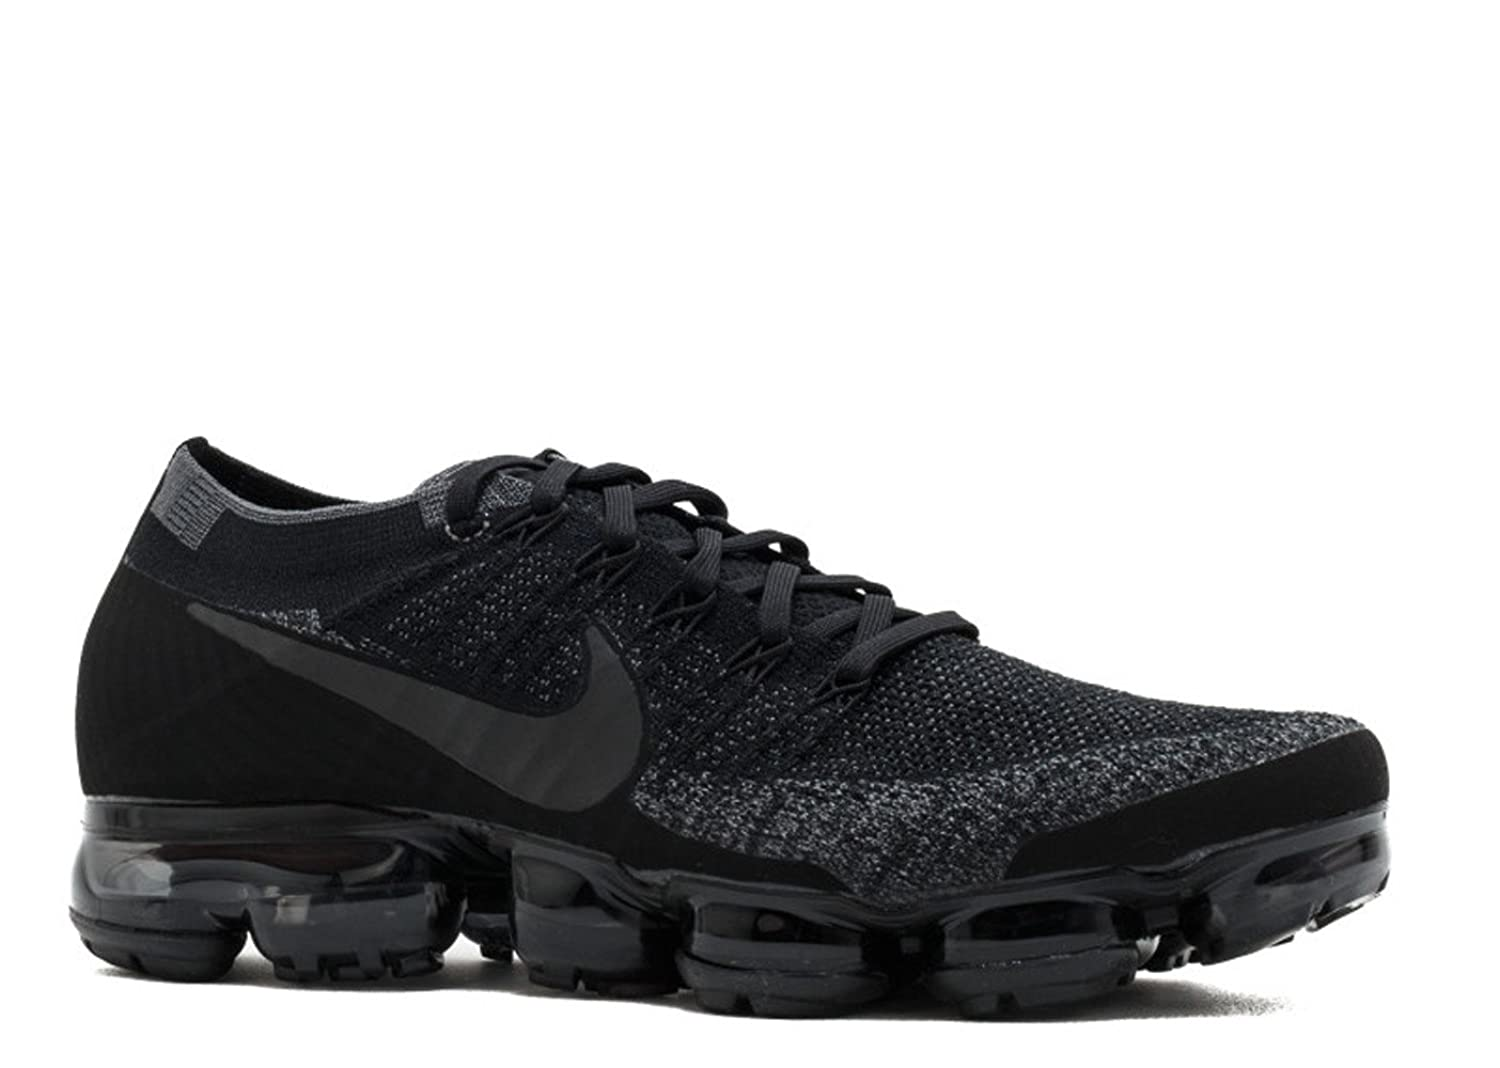 Download NIKE VAPORMAX REVIEW .mp4 3gp flv Phagunkoyel.IN